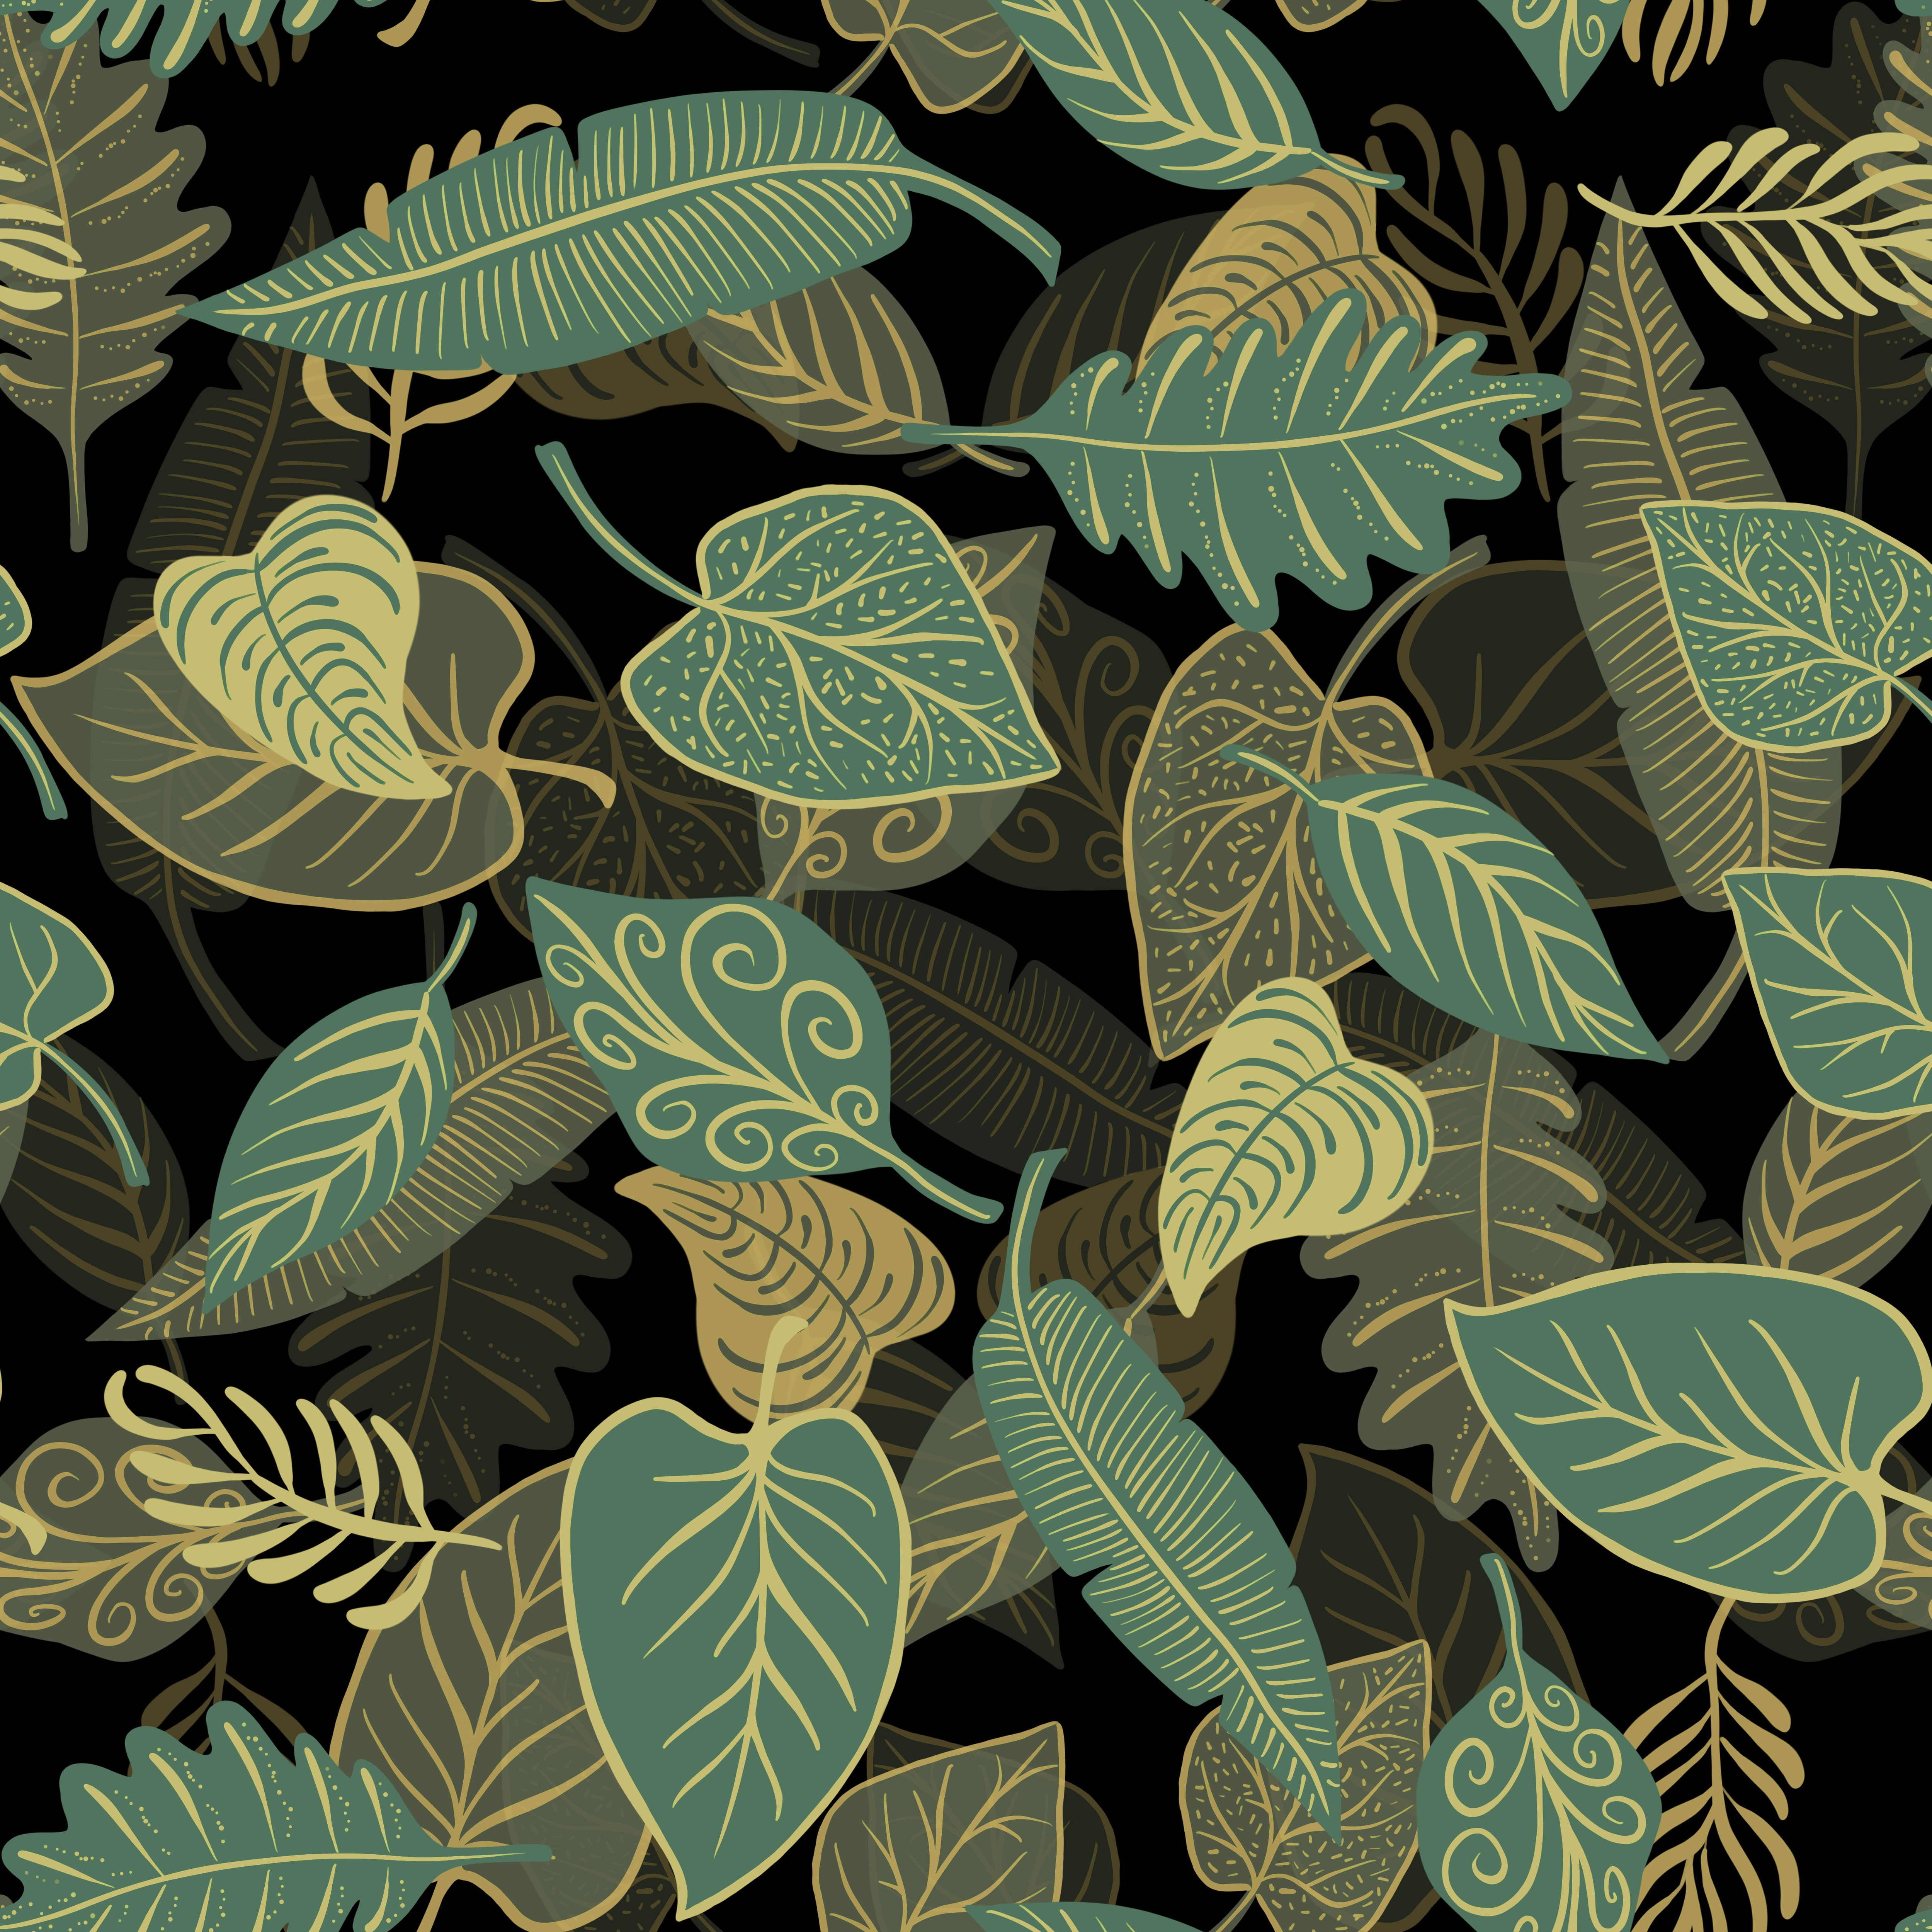 50465 download wallpaper Texture, Textures, Leaves, Patterns, Illustration screensavers and pictures for free